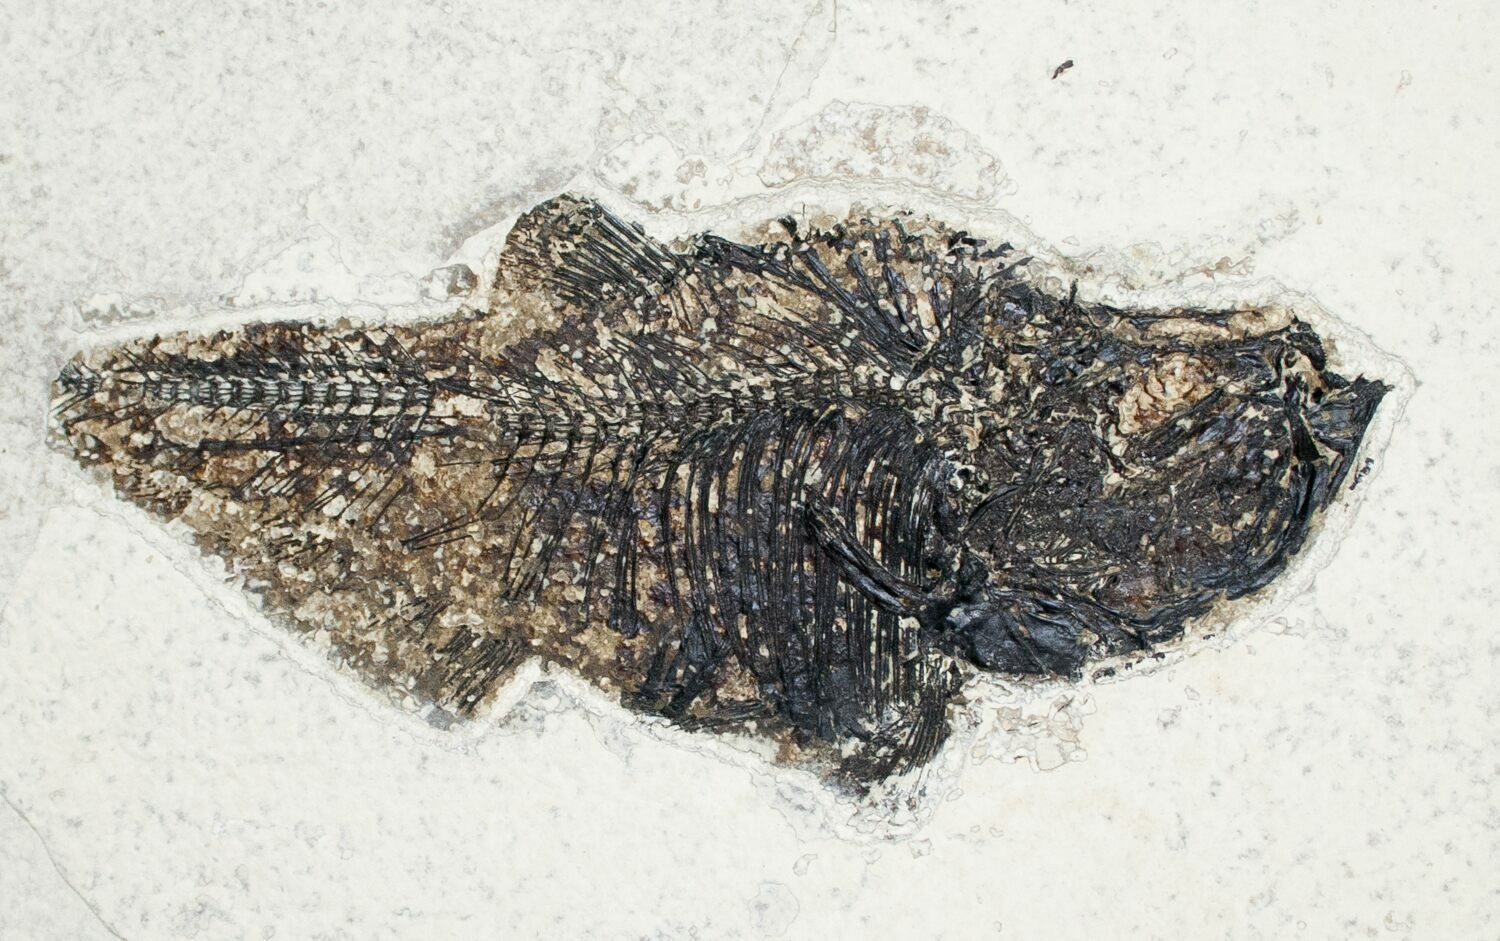 Two large diplomystus fossil fish wyoming for sale for Fish fossils for sale